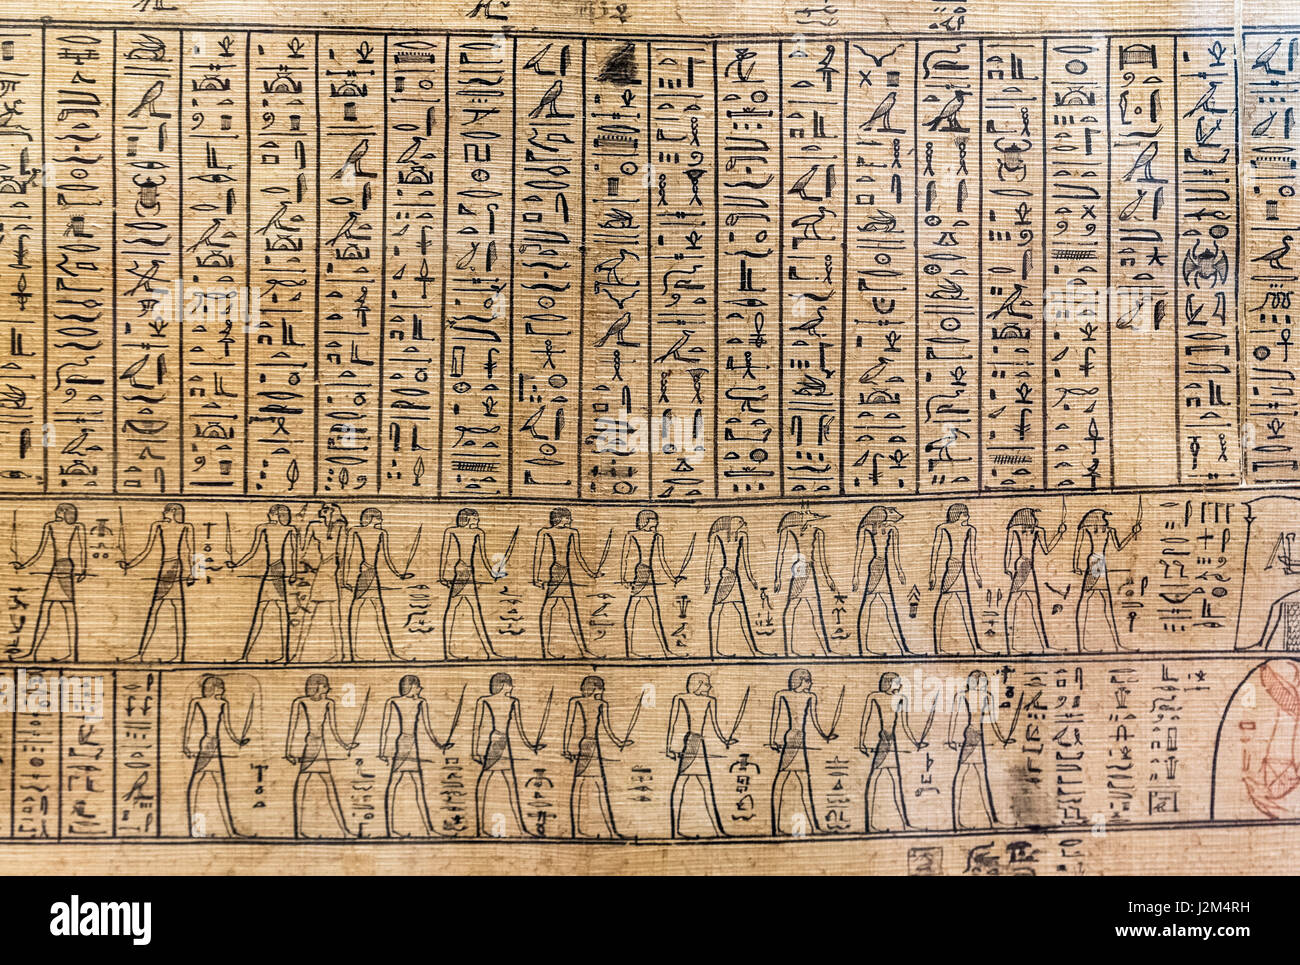 Hieroglyphics Egyptian Hieroglyphs On A Portion Of The Jumilhac Papyrus Dated From Late Ptolemaic Or Early Roman Period Egypt